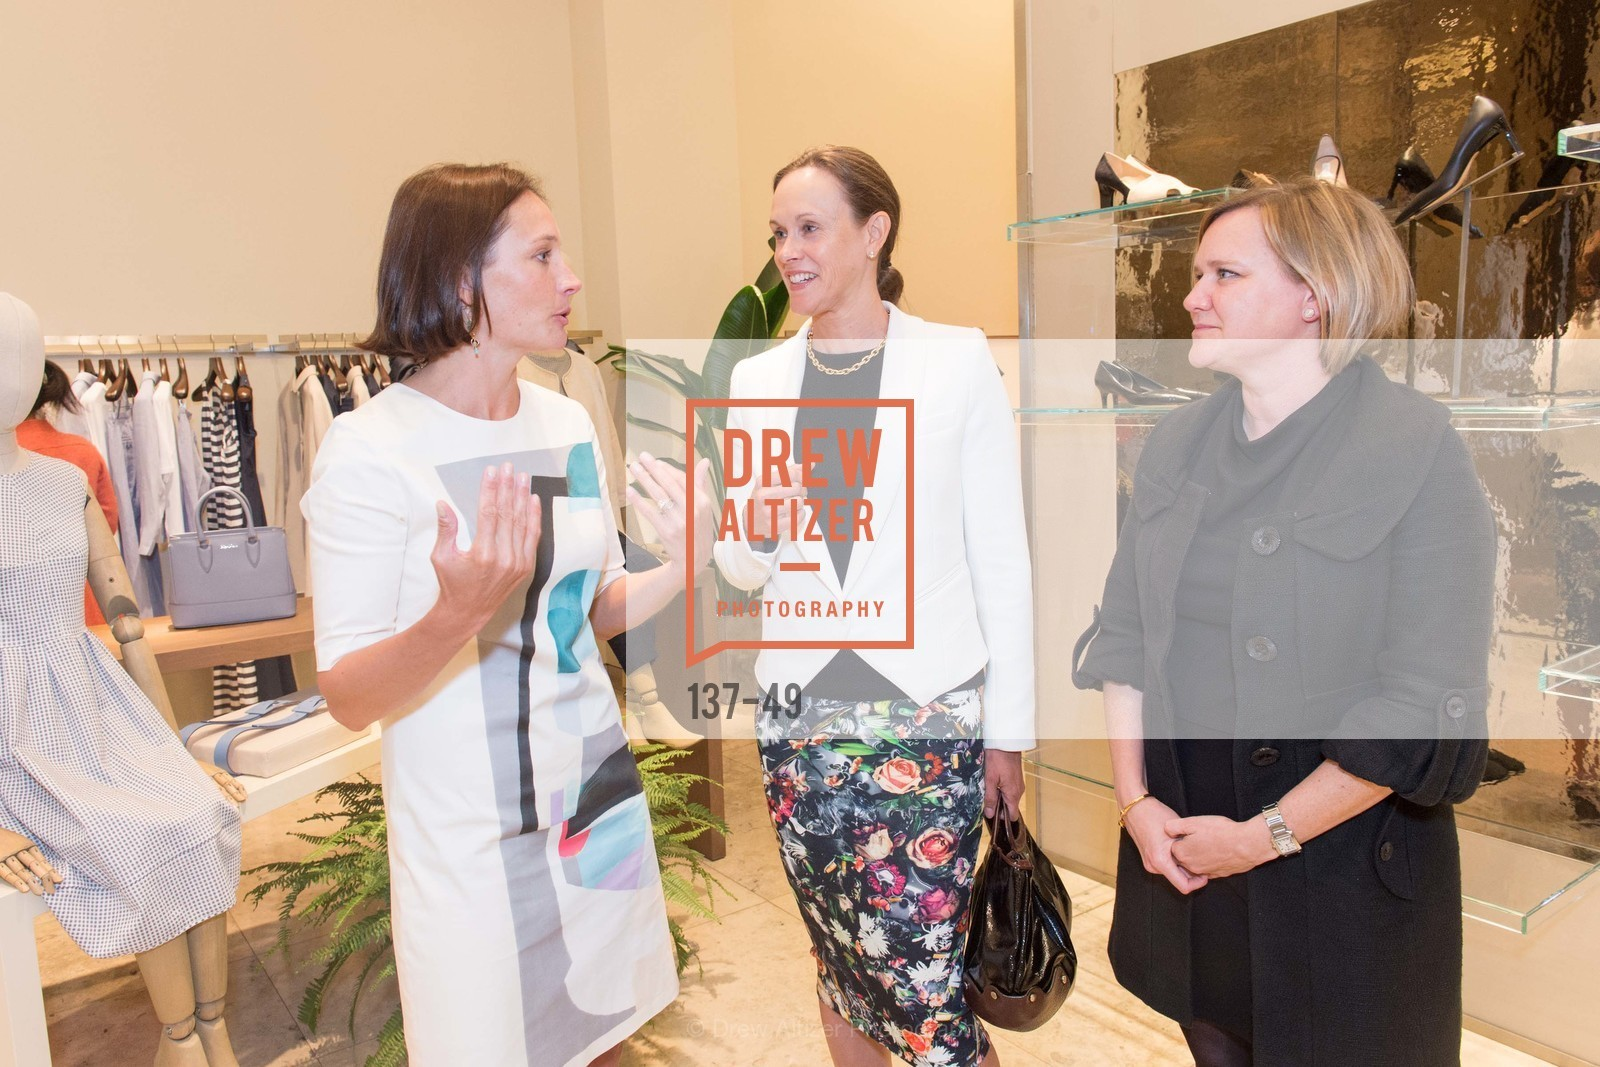 Betsy McDermott, Karen Flynn, Brandy Vause, Luncheon Hosted by Max Mara, Max Mara. 175 Post St, San Francisco, CA 94108, April 21st, 2015,Drew Altizer, Drew Altizer Photography, full-service event agency, private events, San Francisco photographer, photographer California